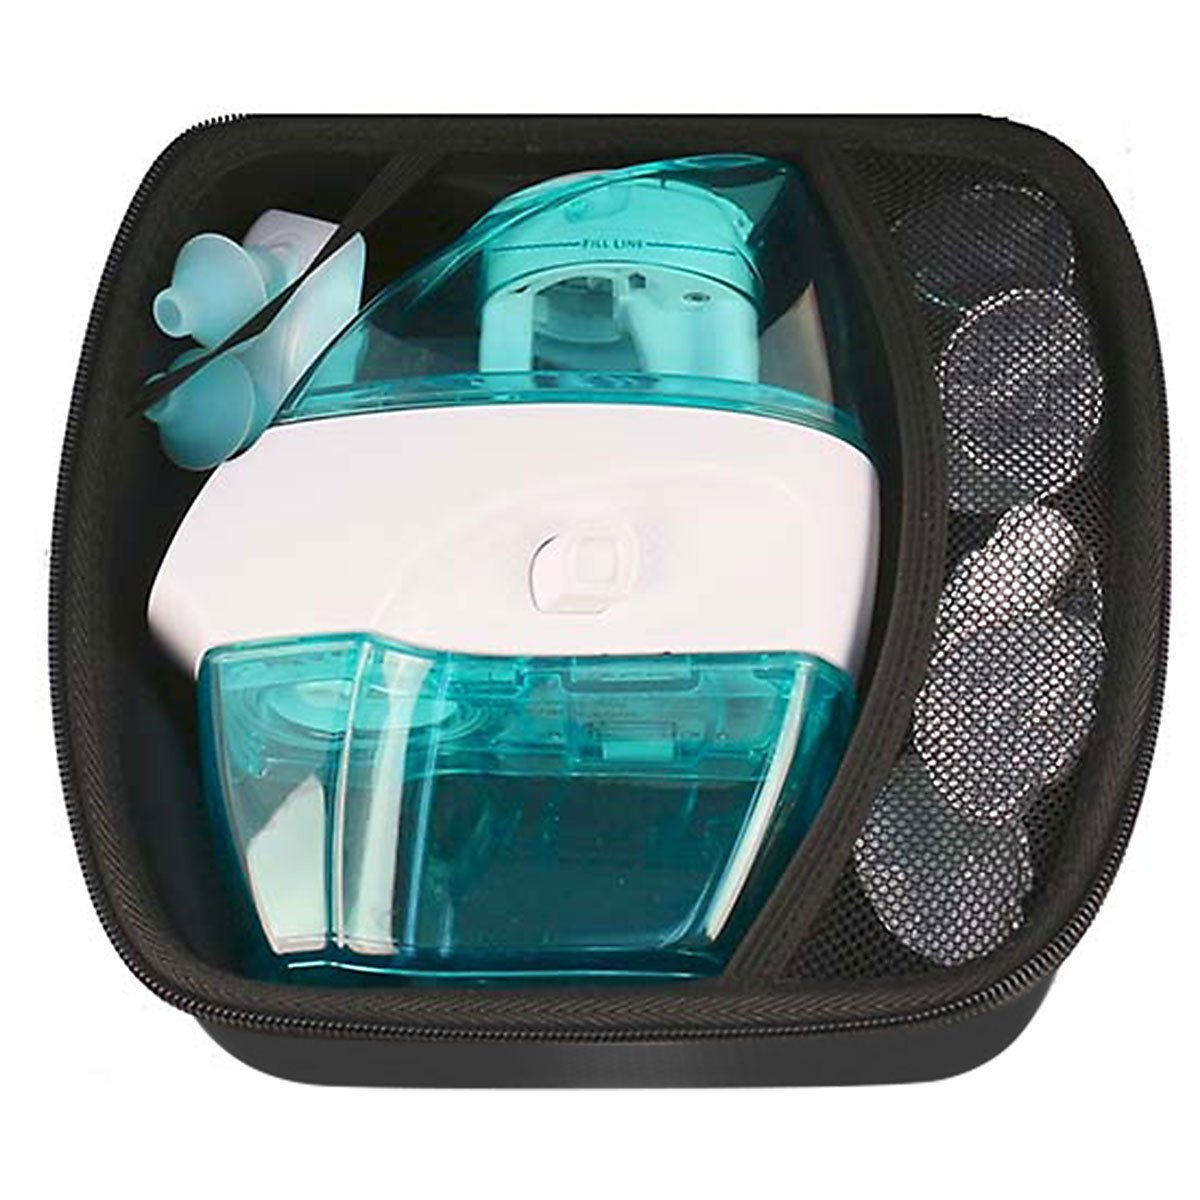 Navage Nasal Irrigation Deluxe Bundle: Naväge Nose Cleaner, 60 SaltPod Capsules, Countertop Caddy, and Travel Case. $160.75 if purchased separately. You save $40.80 (25%) by Navage